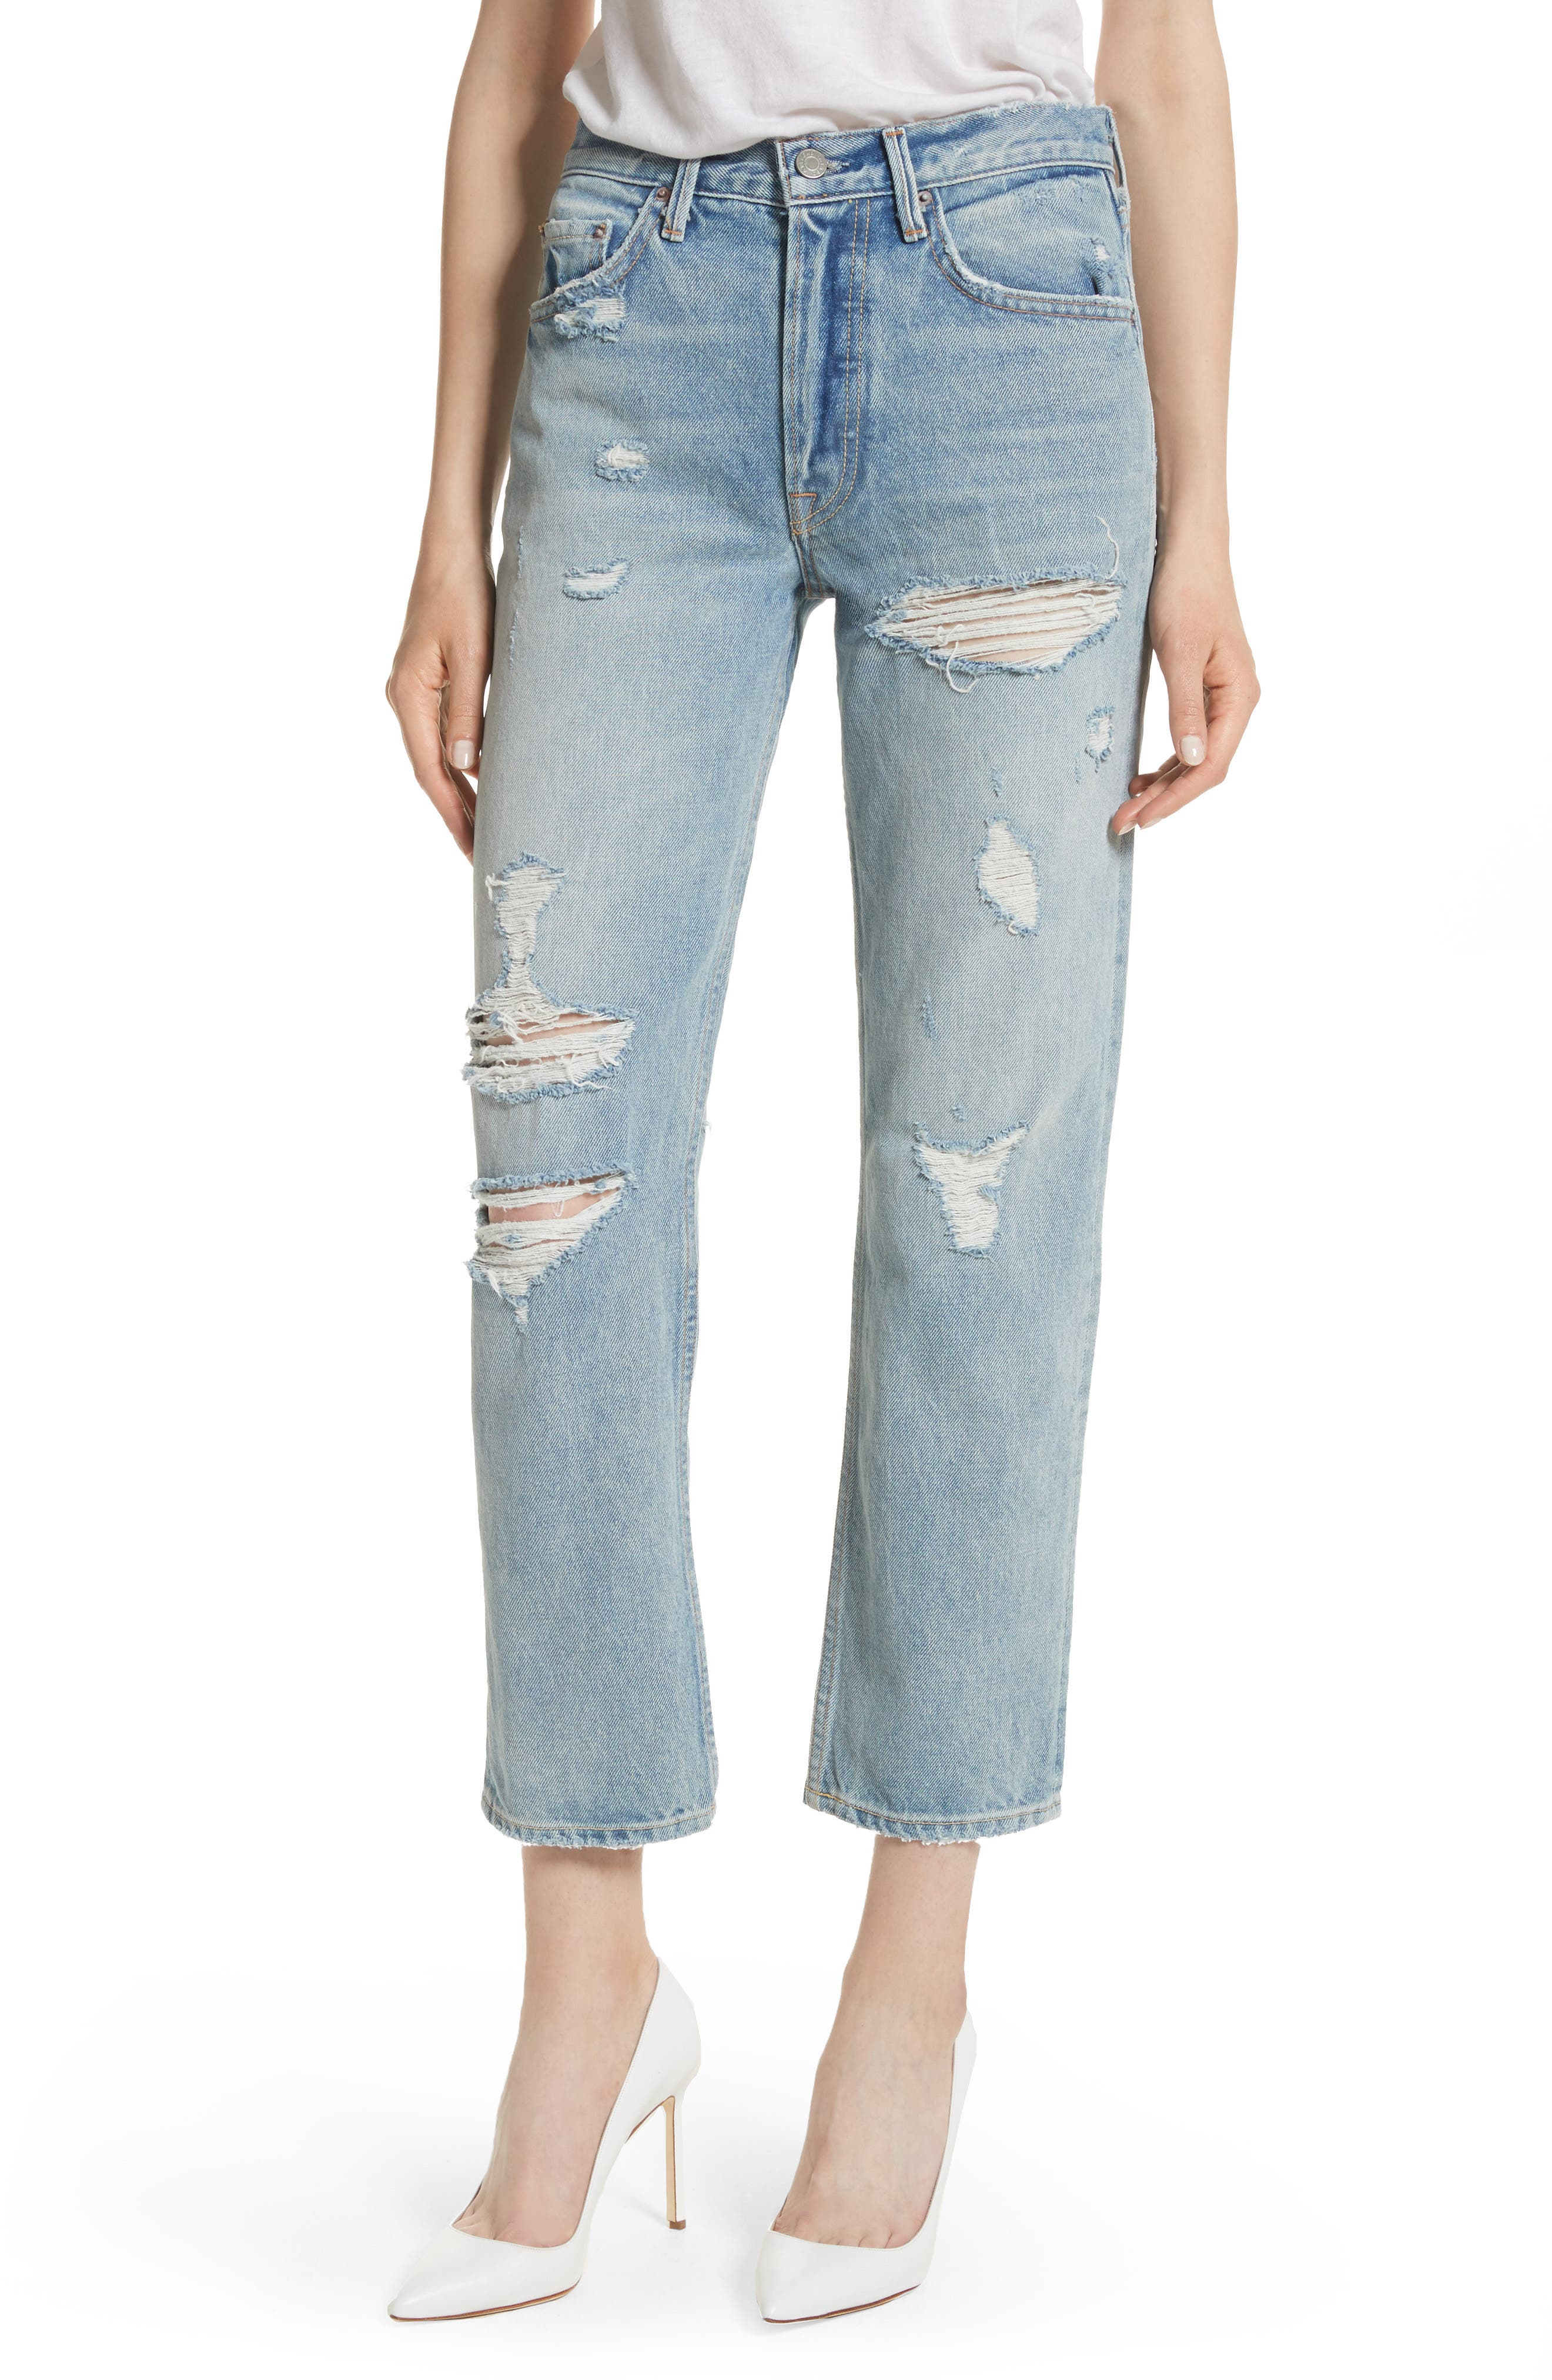 Helena Ripped Rigid High Waist Straight Jeans,                         Main,                         color, Reese